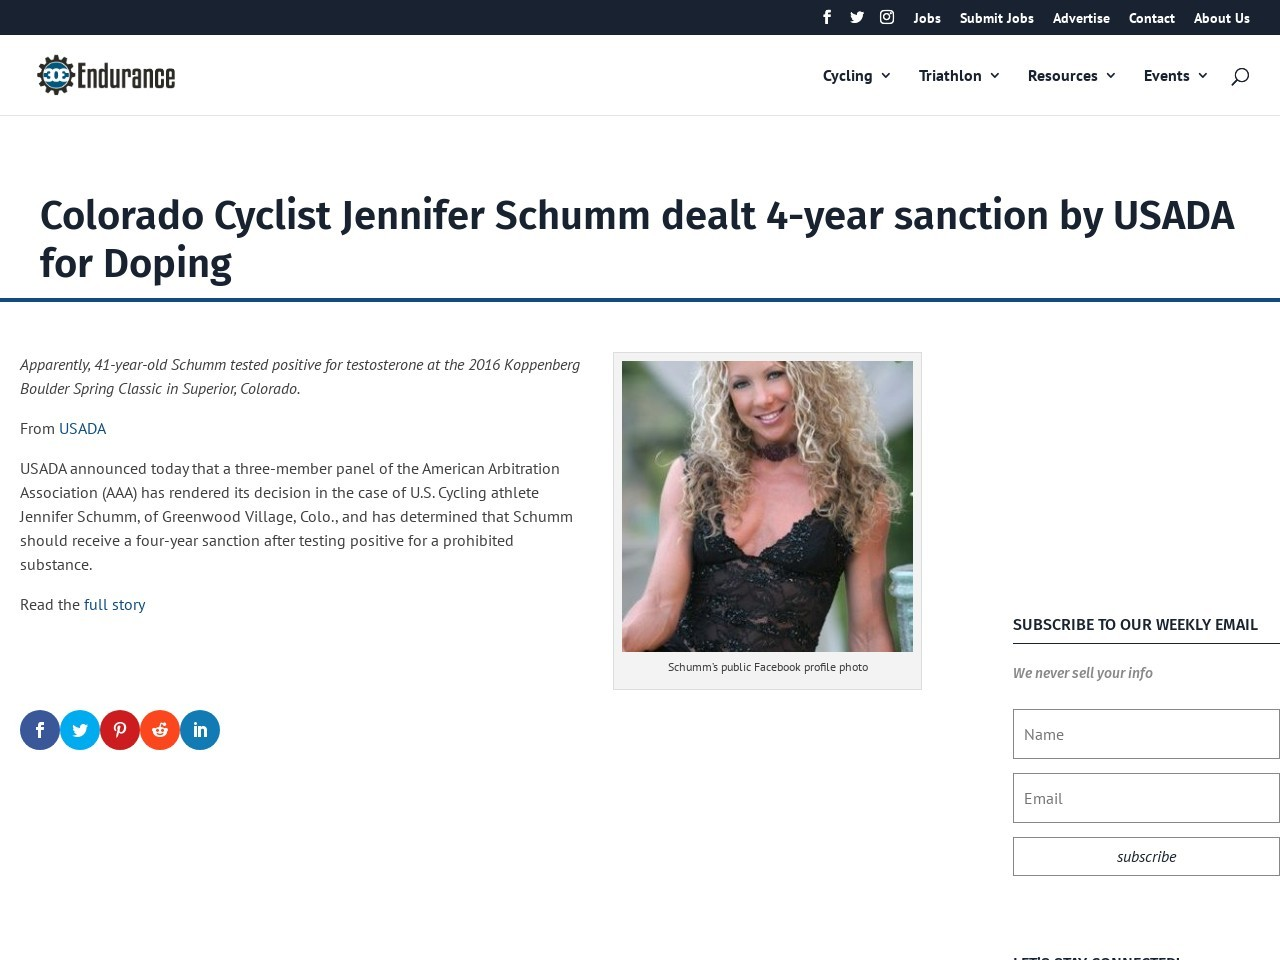 Colorado Cyclist Jennifer Schumm dealt 4-year sanction by USADA for Doping